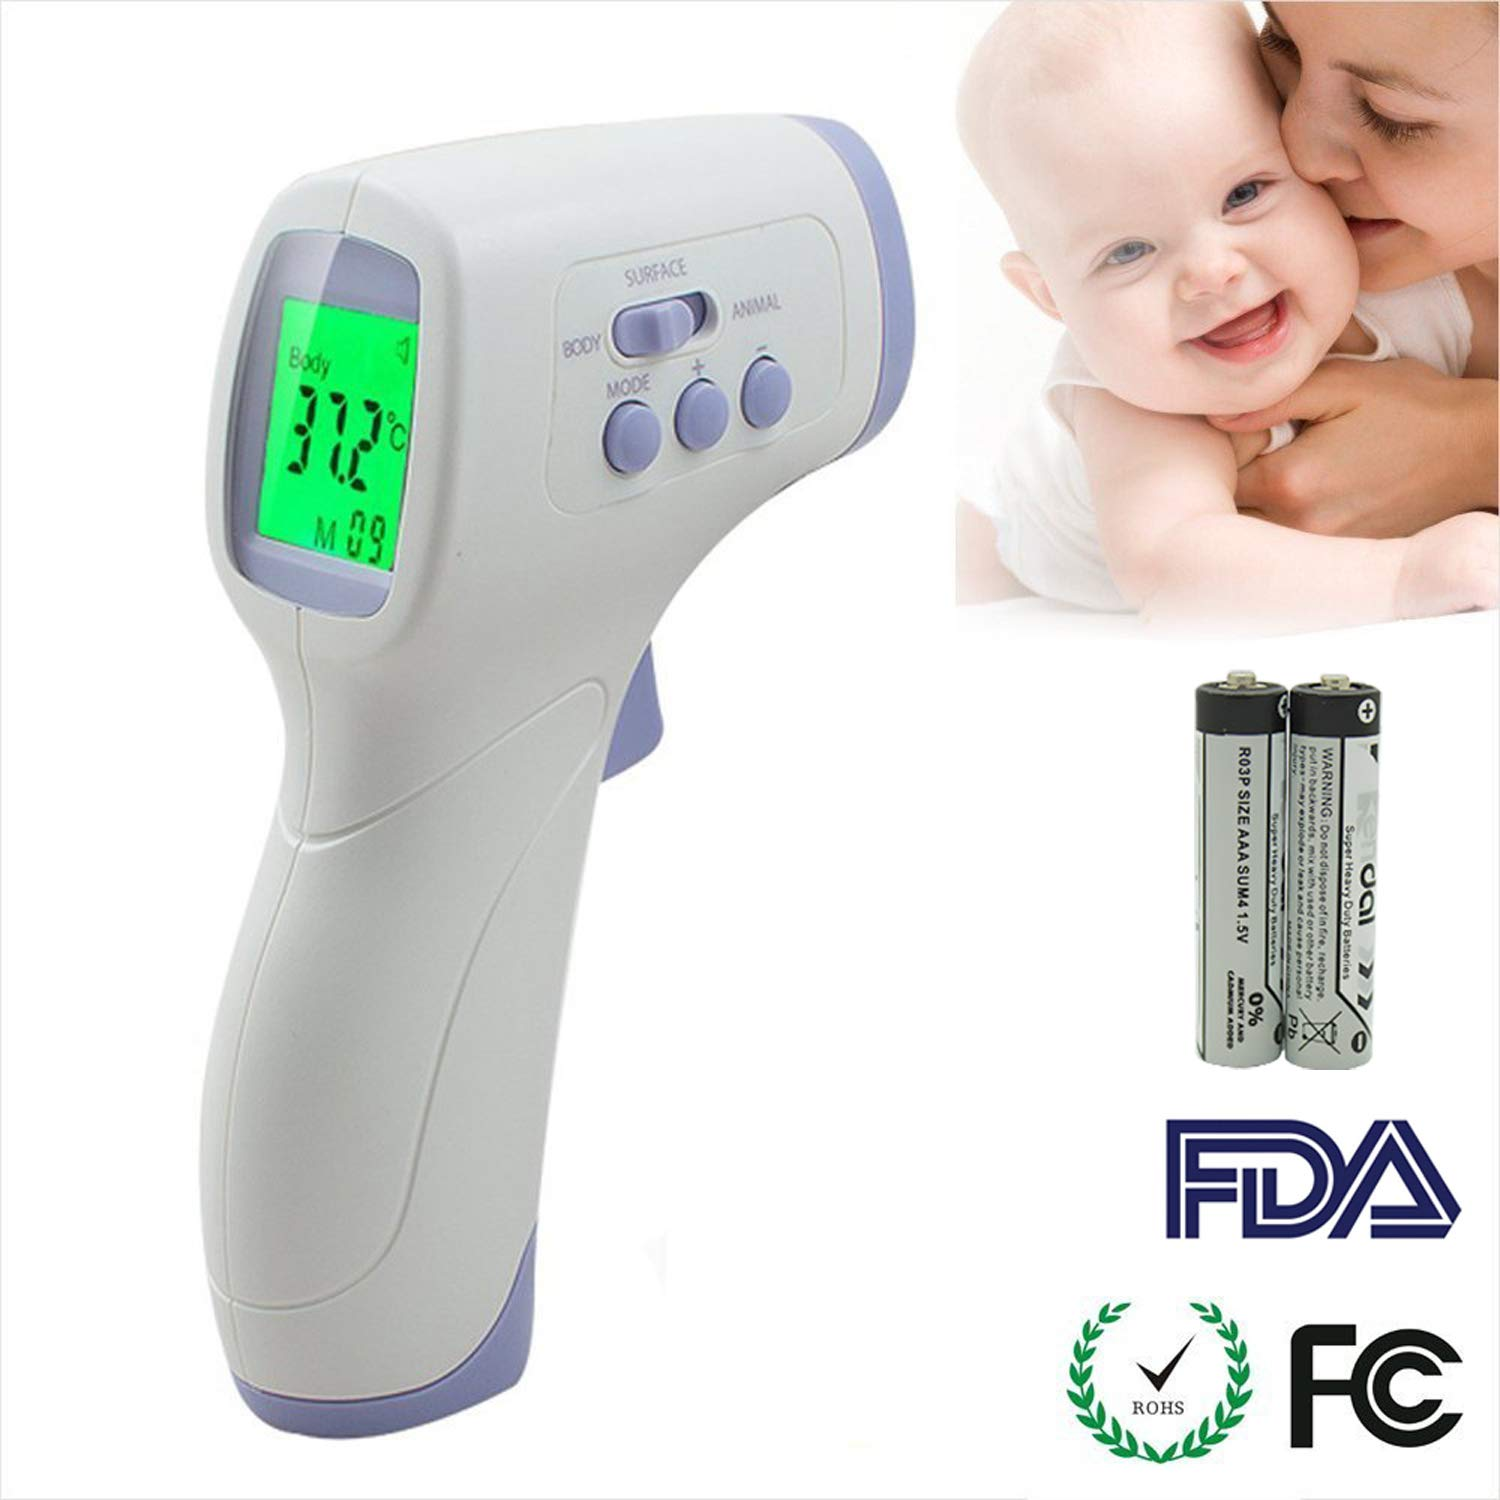 ANIKUV Forehead Digital Thermometer for Baby, Kids, Adults and Pets, Non-Contact Infrared Body Temperature Thermometer Accurate Fever Thermometer FT-CW-067